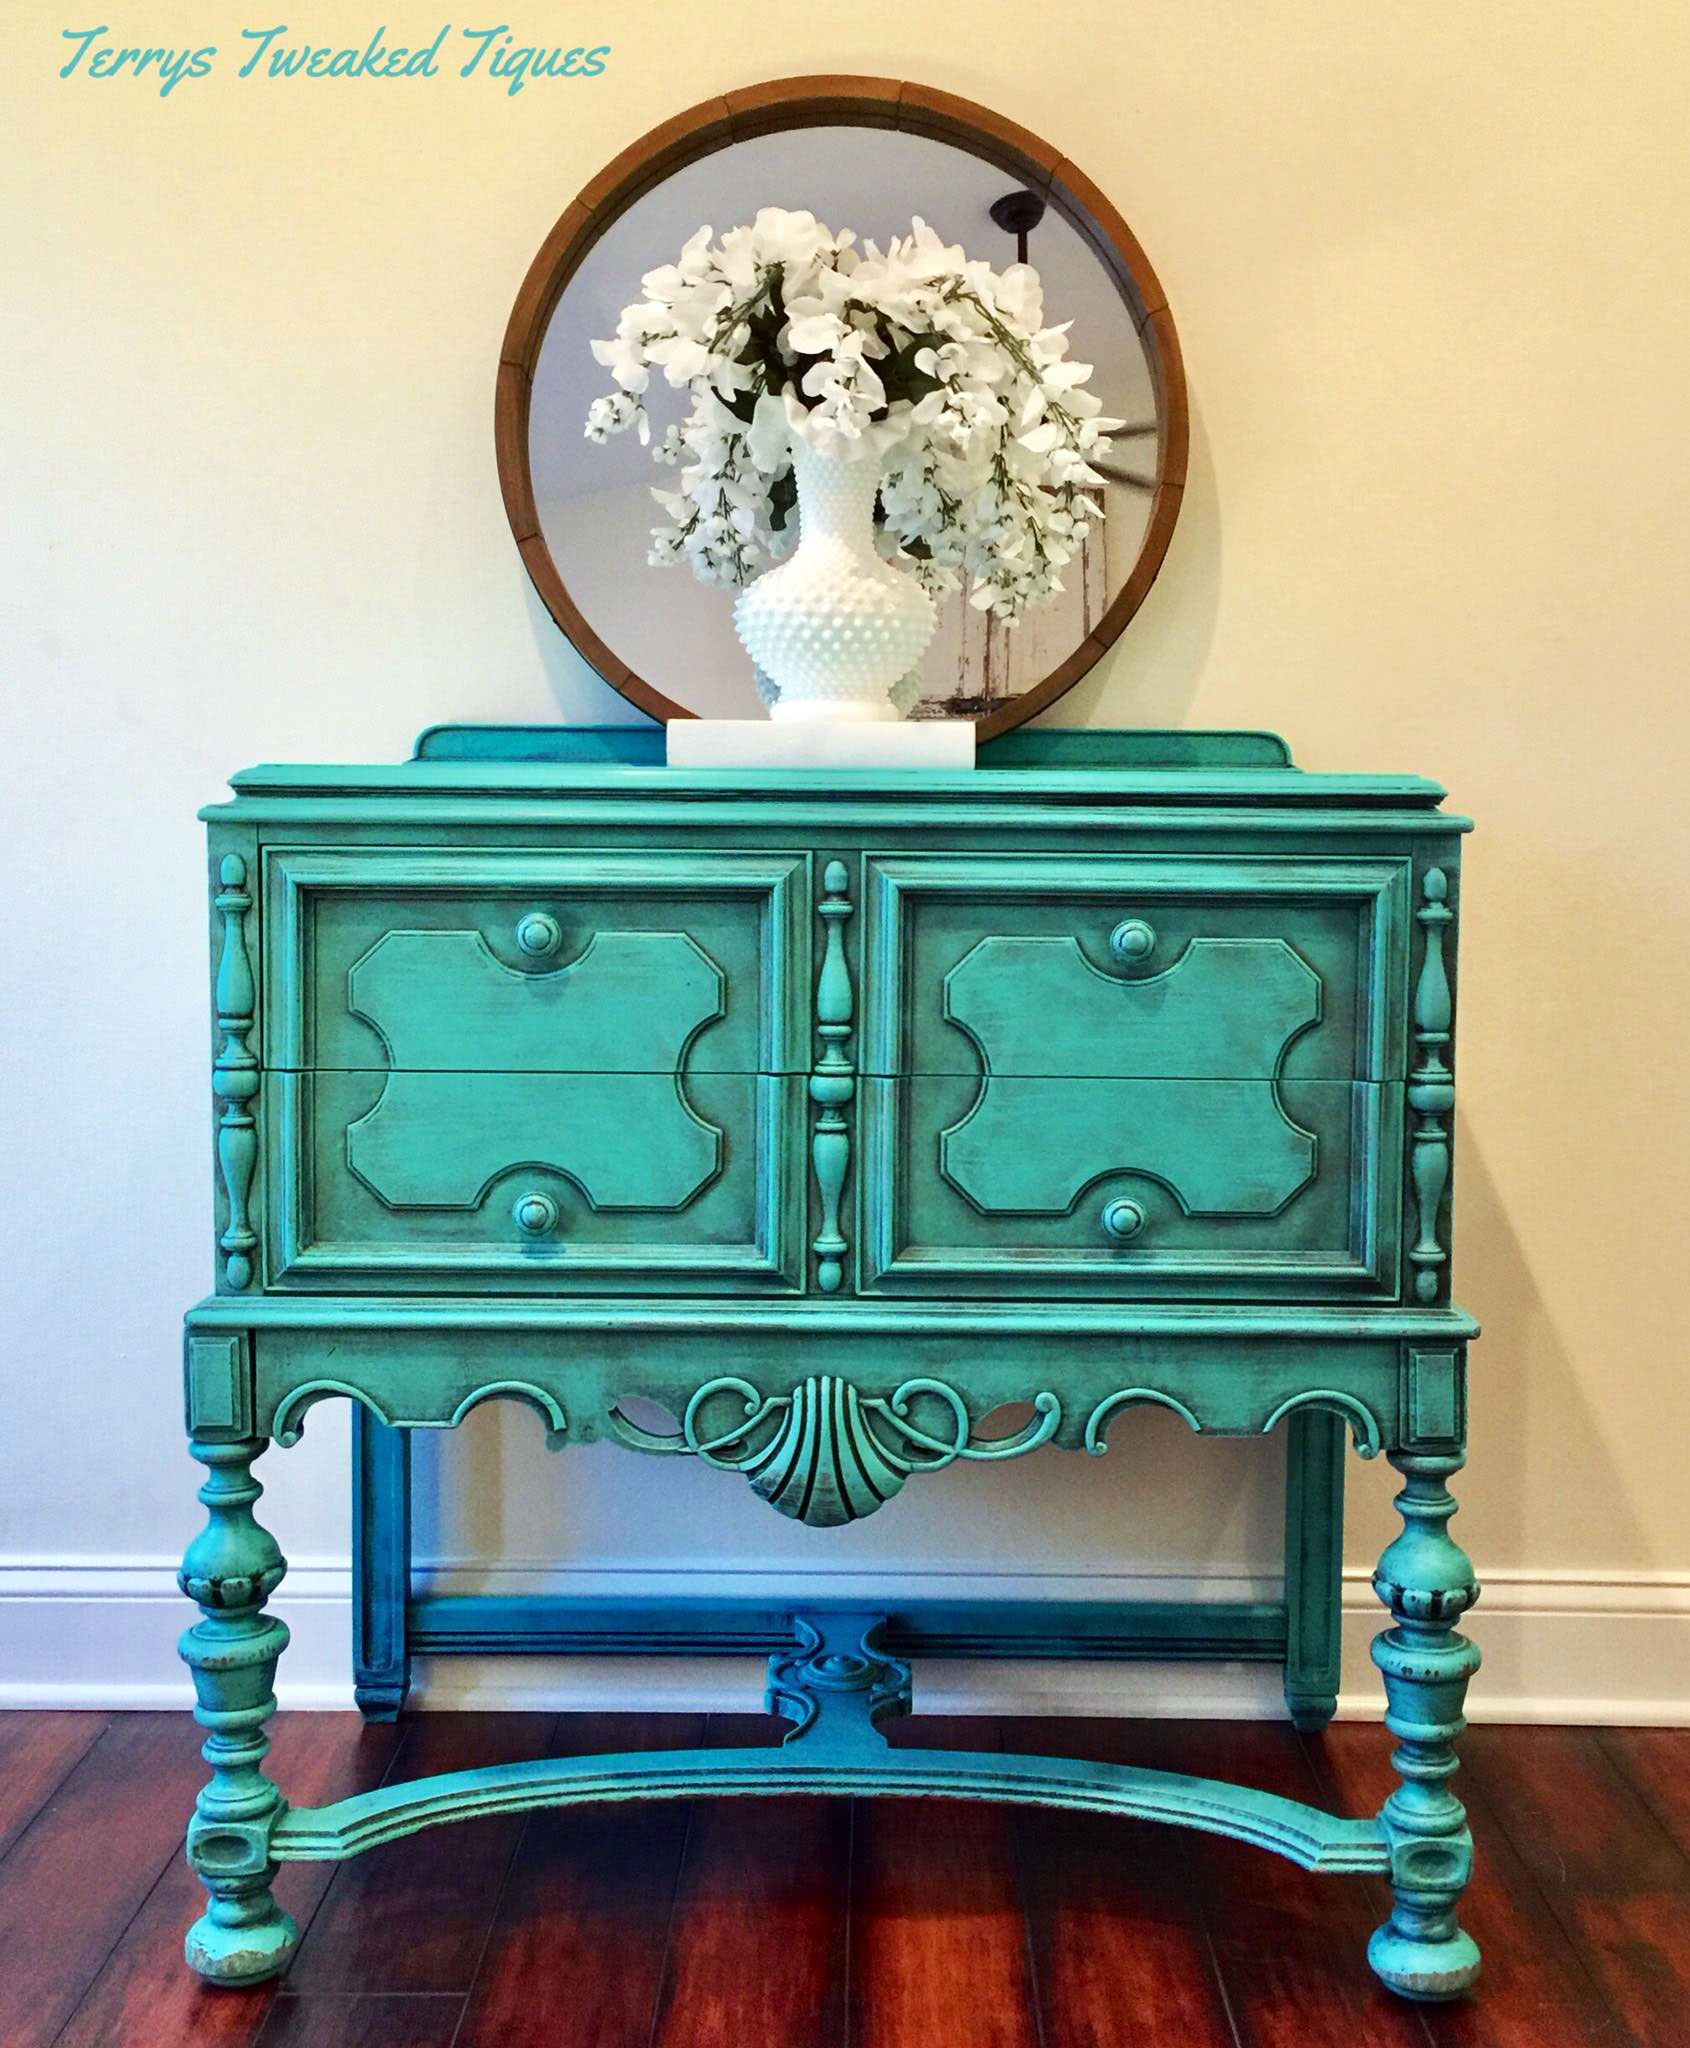 flf furniture pulls gallery index content turquoise of chest turq paprika wp